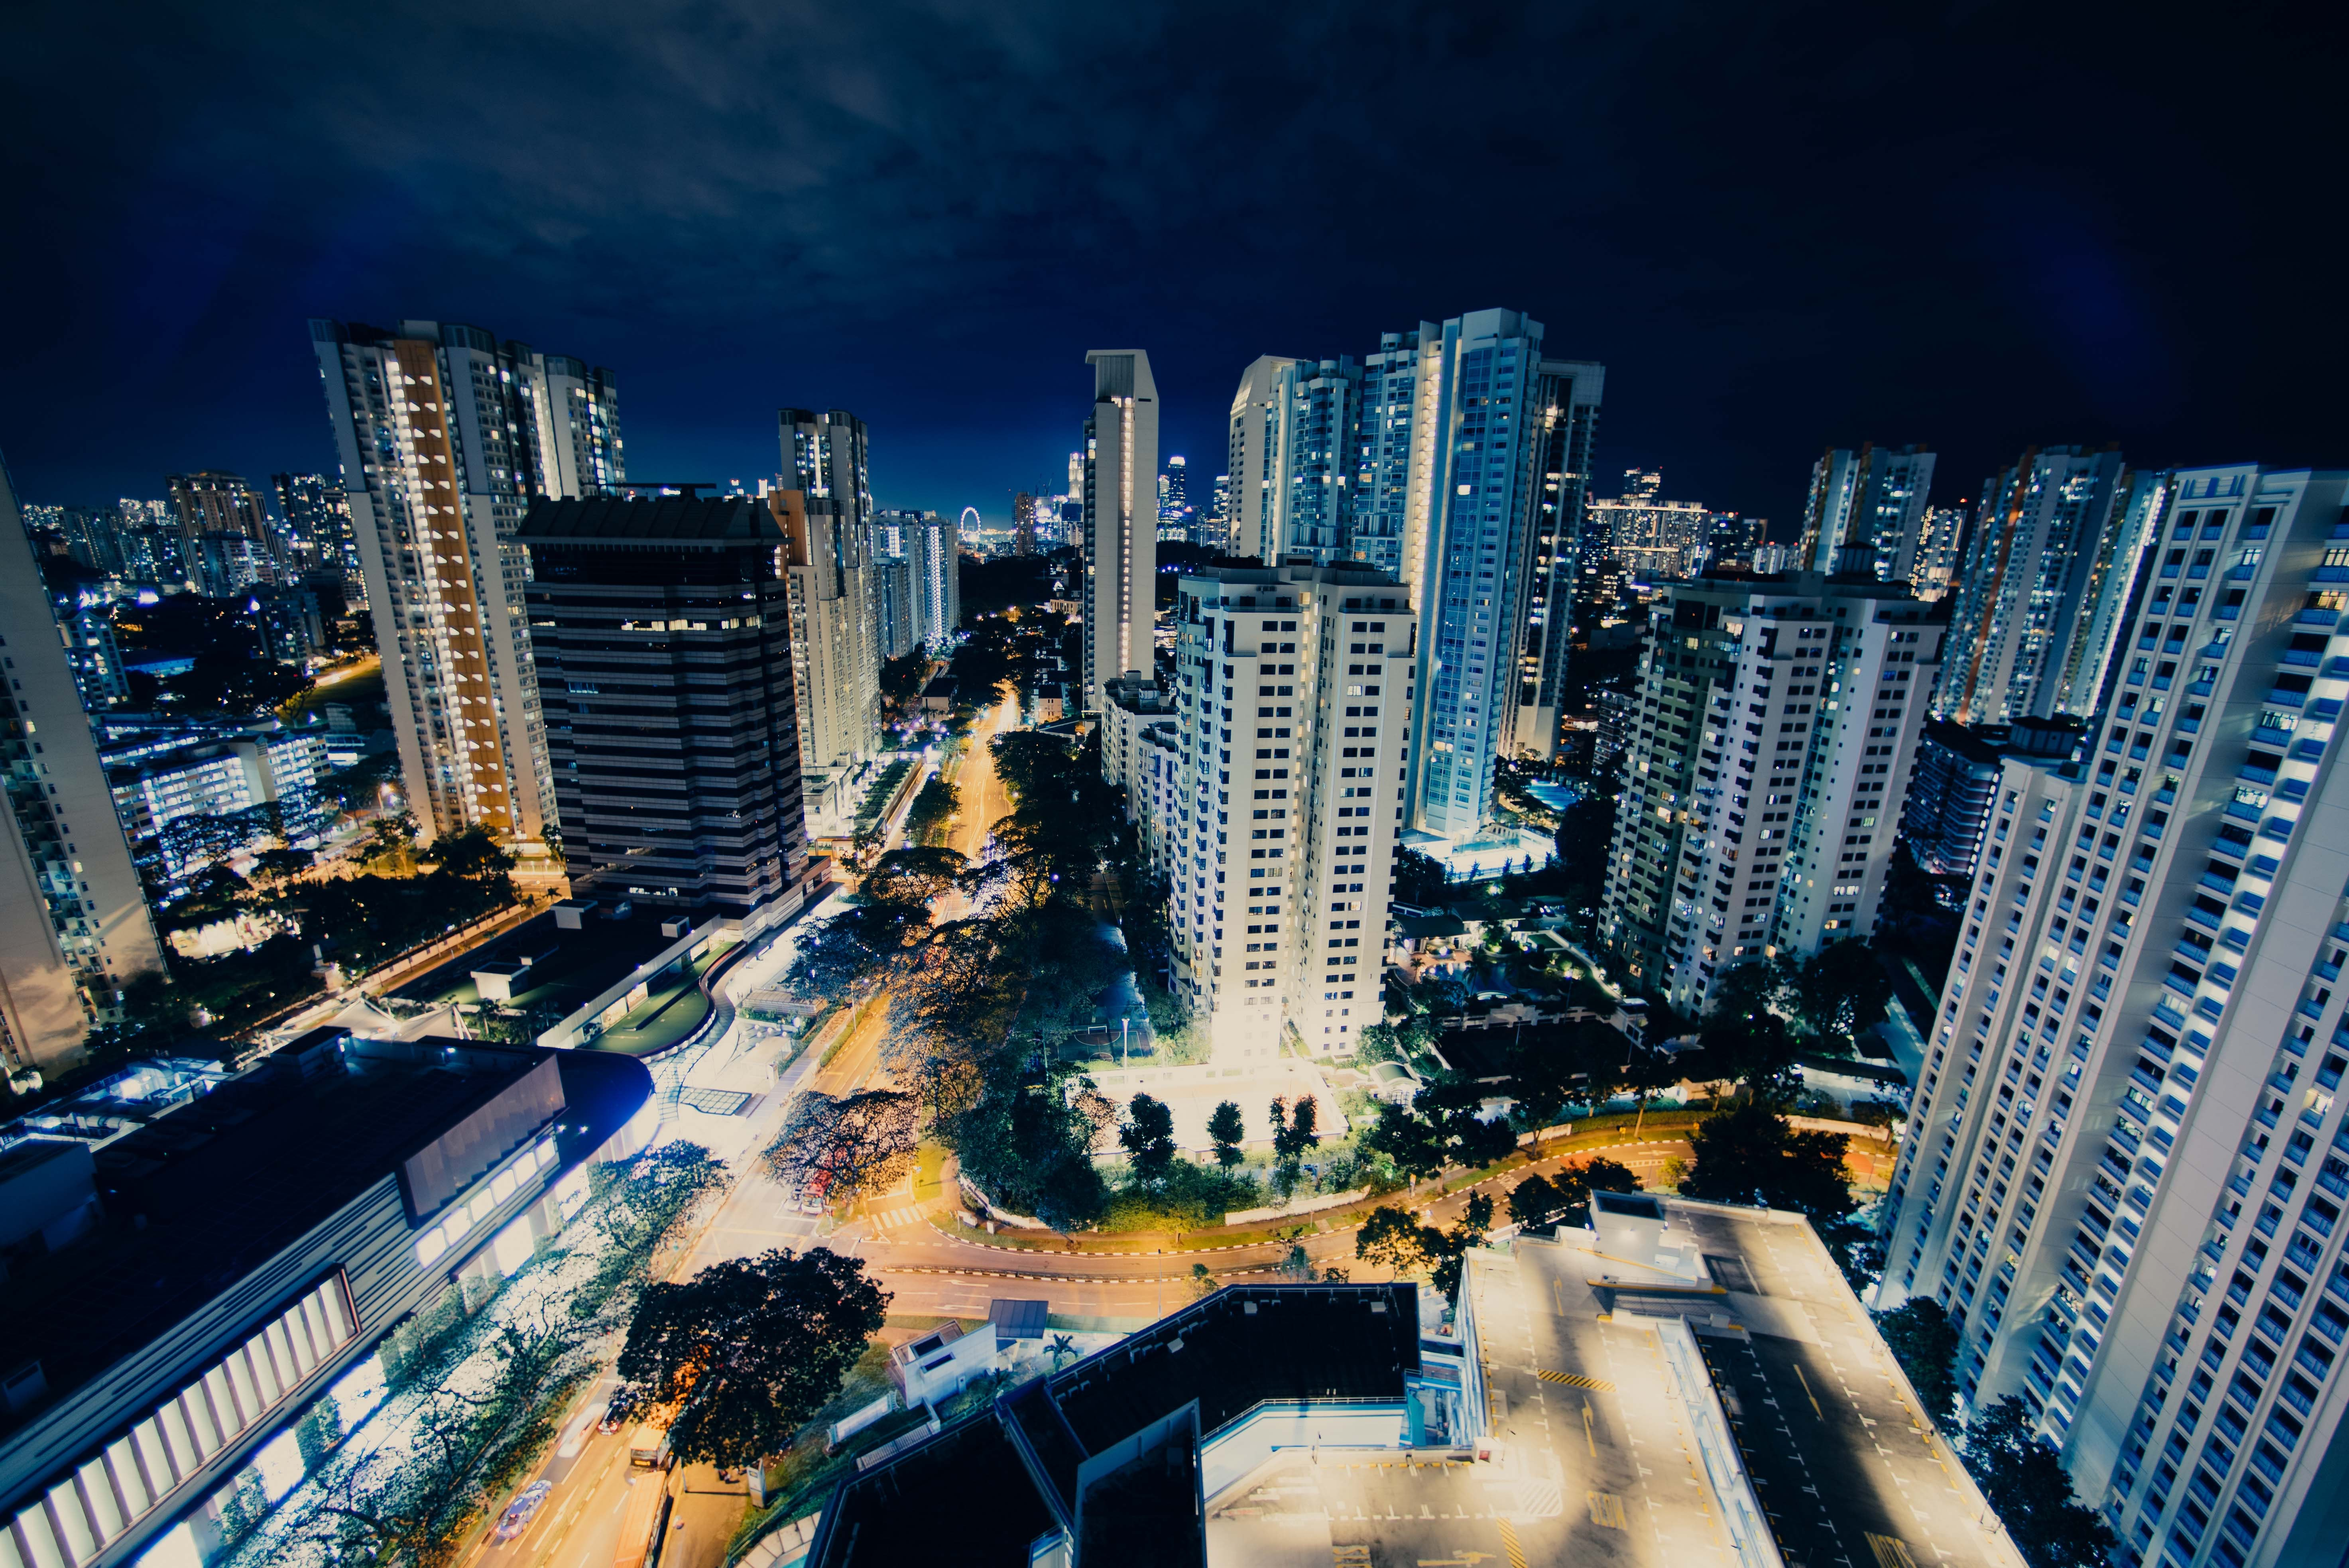 aerial photography of high-rise buildings at nighttime